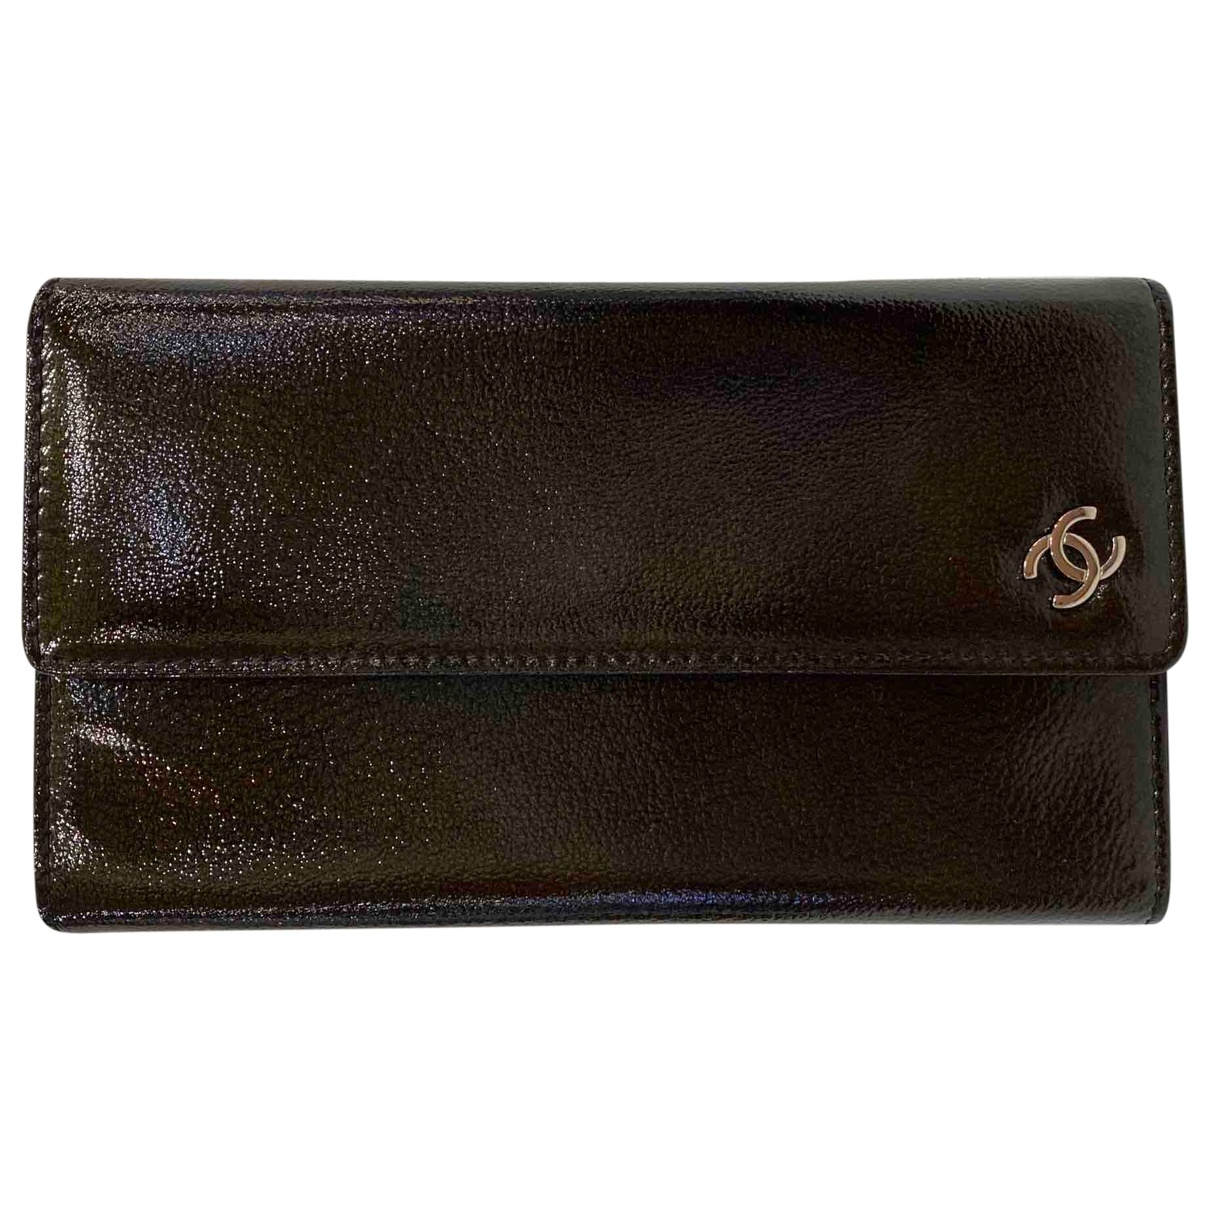 Chanel \N Patent leather wallet for Women \N